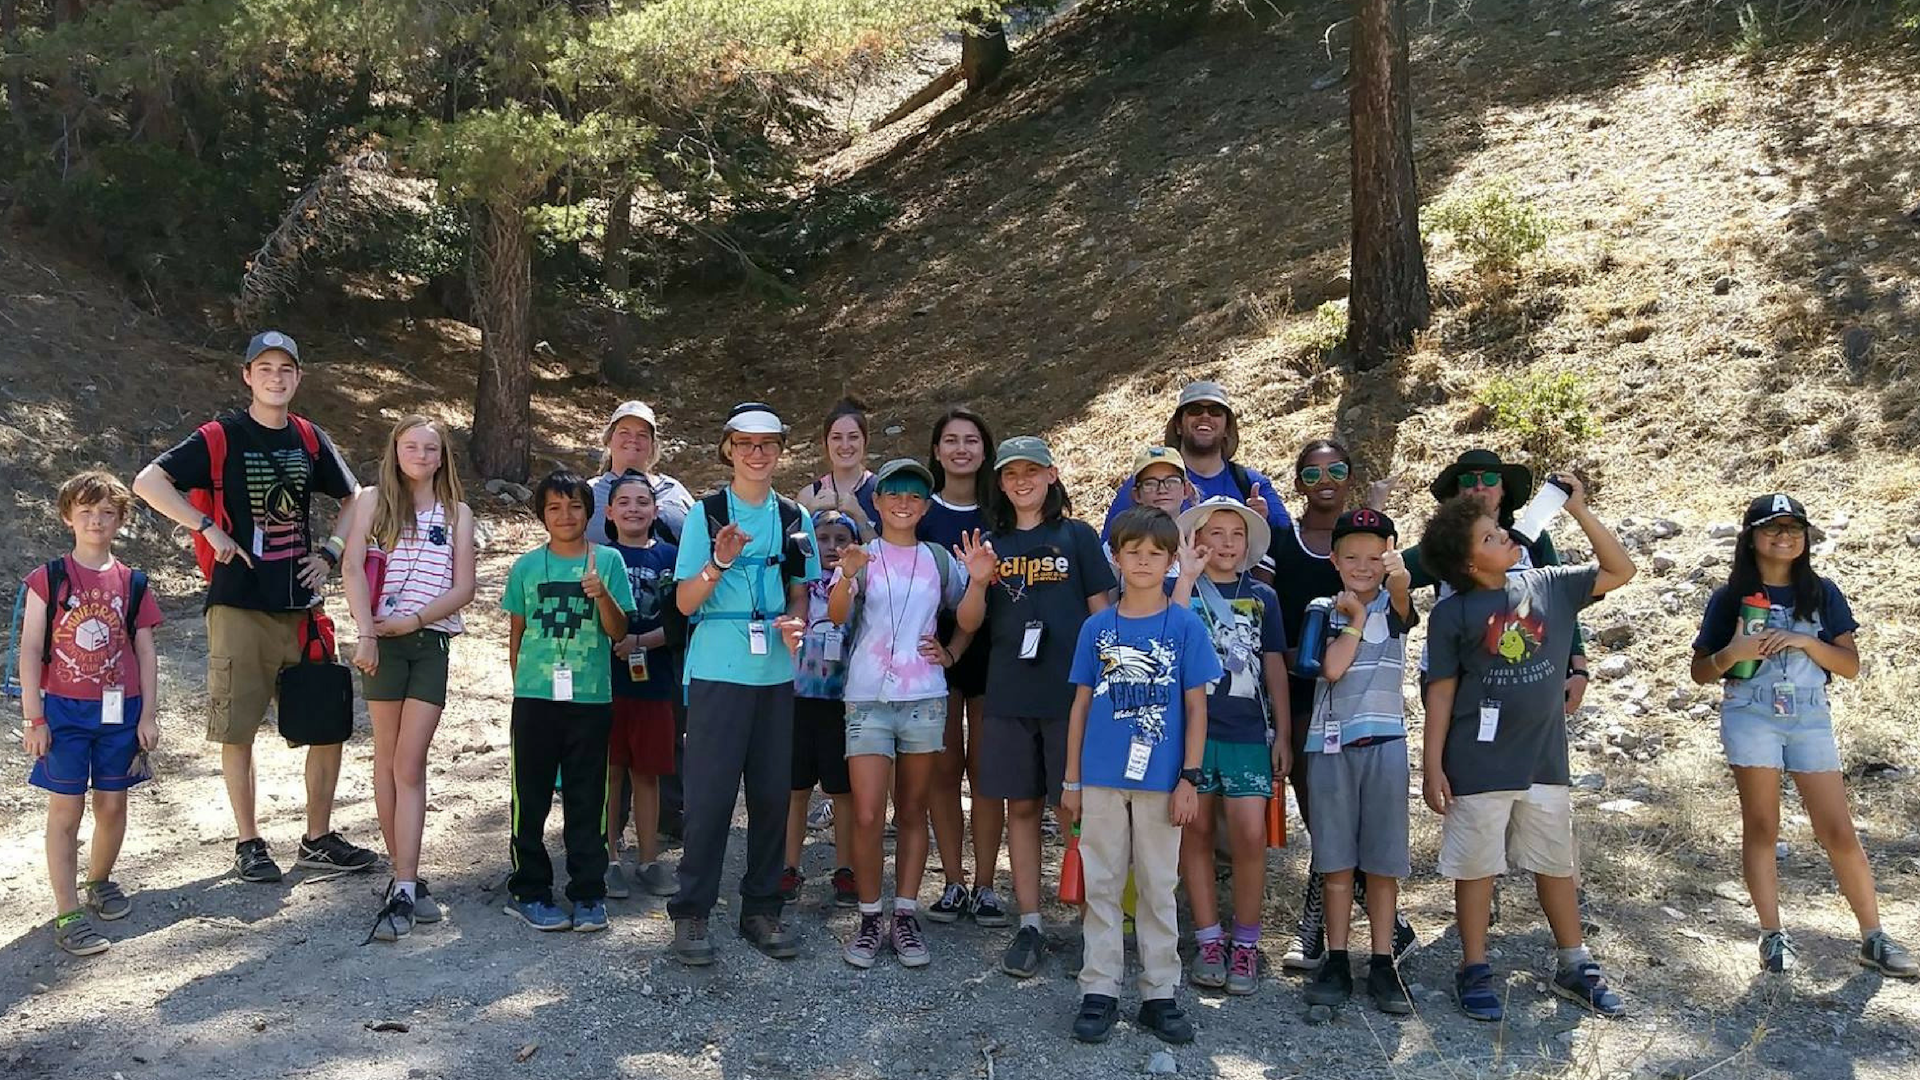 Happy Campers! Photo by Camp Quest West staff.